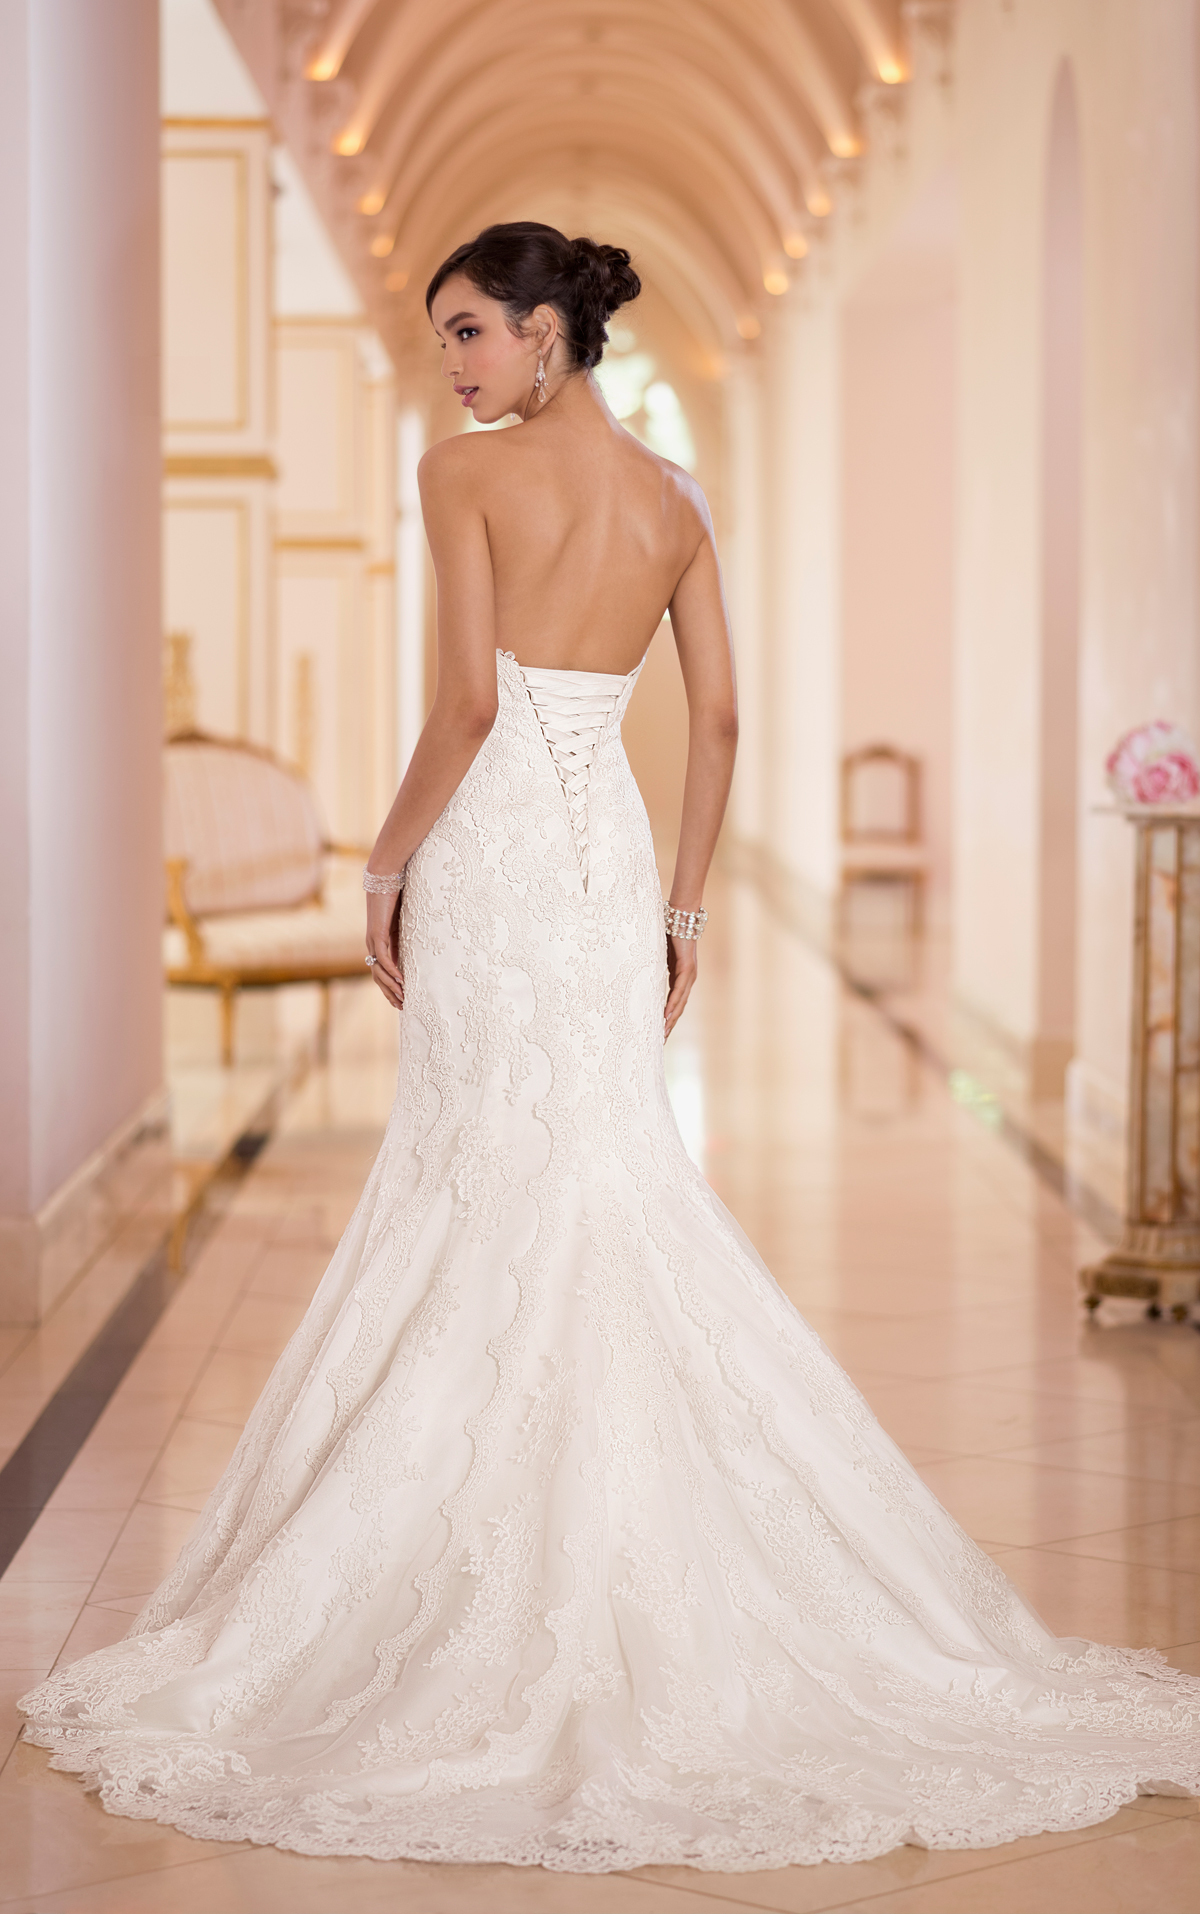 Glamorous stella york wedding dresses 2014 collection for Sexy wedding dress images